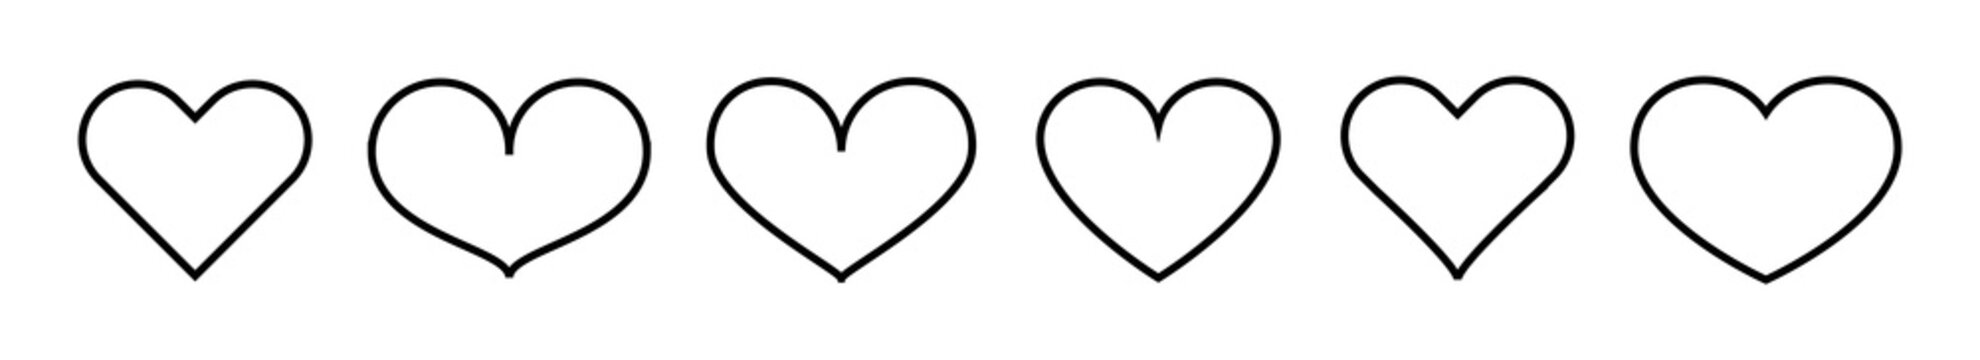 Heart linear icon. Set thin line heart icons isolated. Concept of love. Vector design elements on white background.